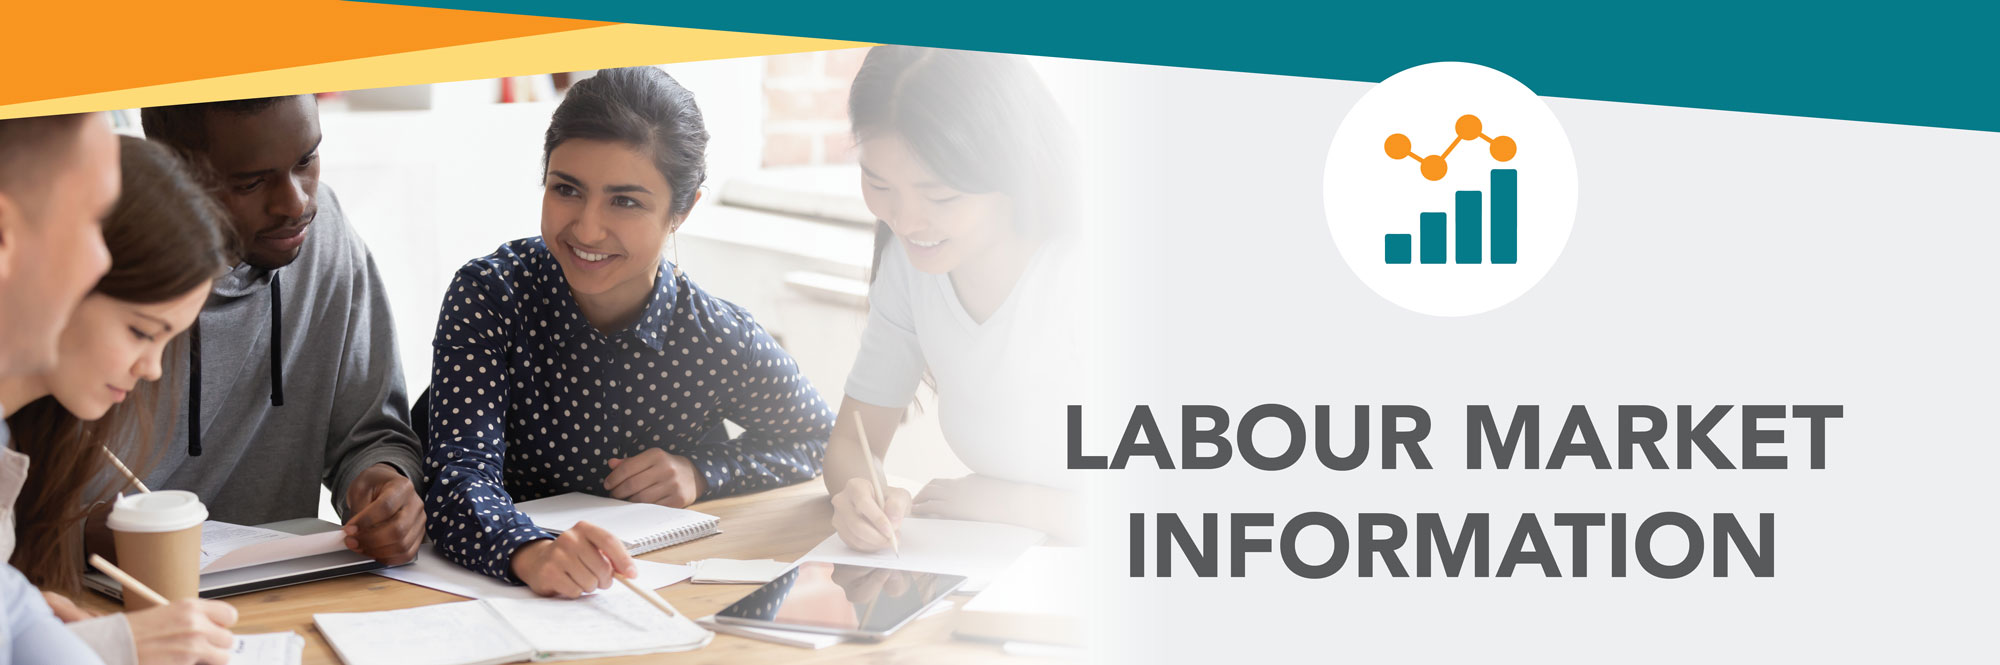 Contact The Labour Market Group